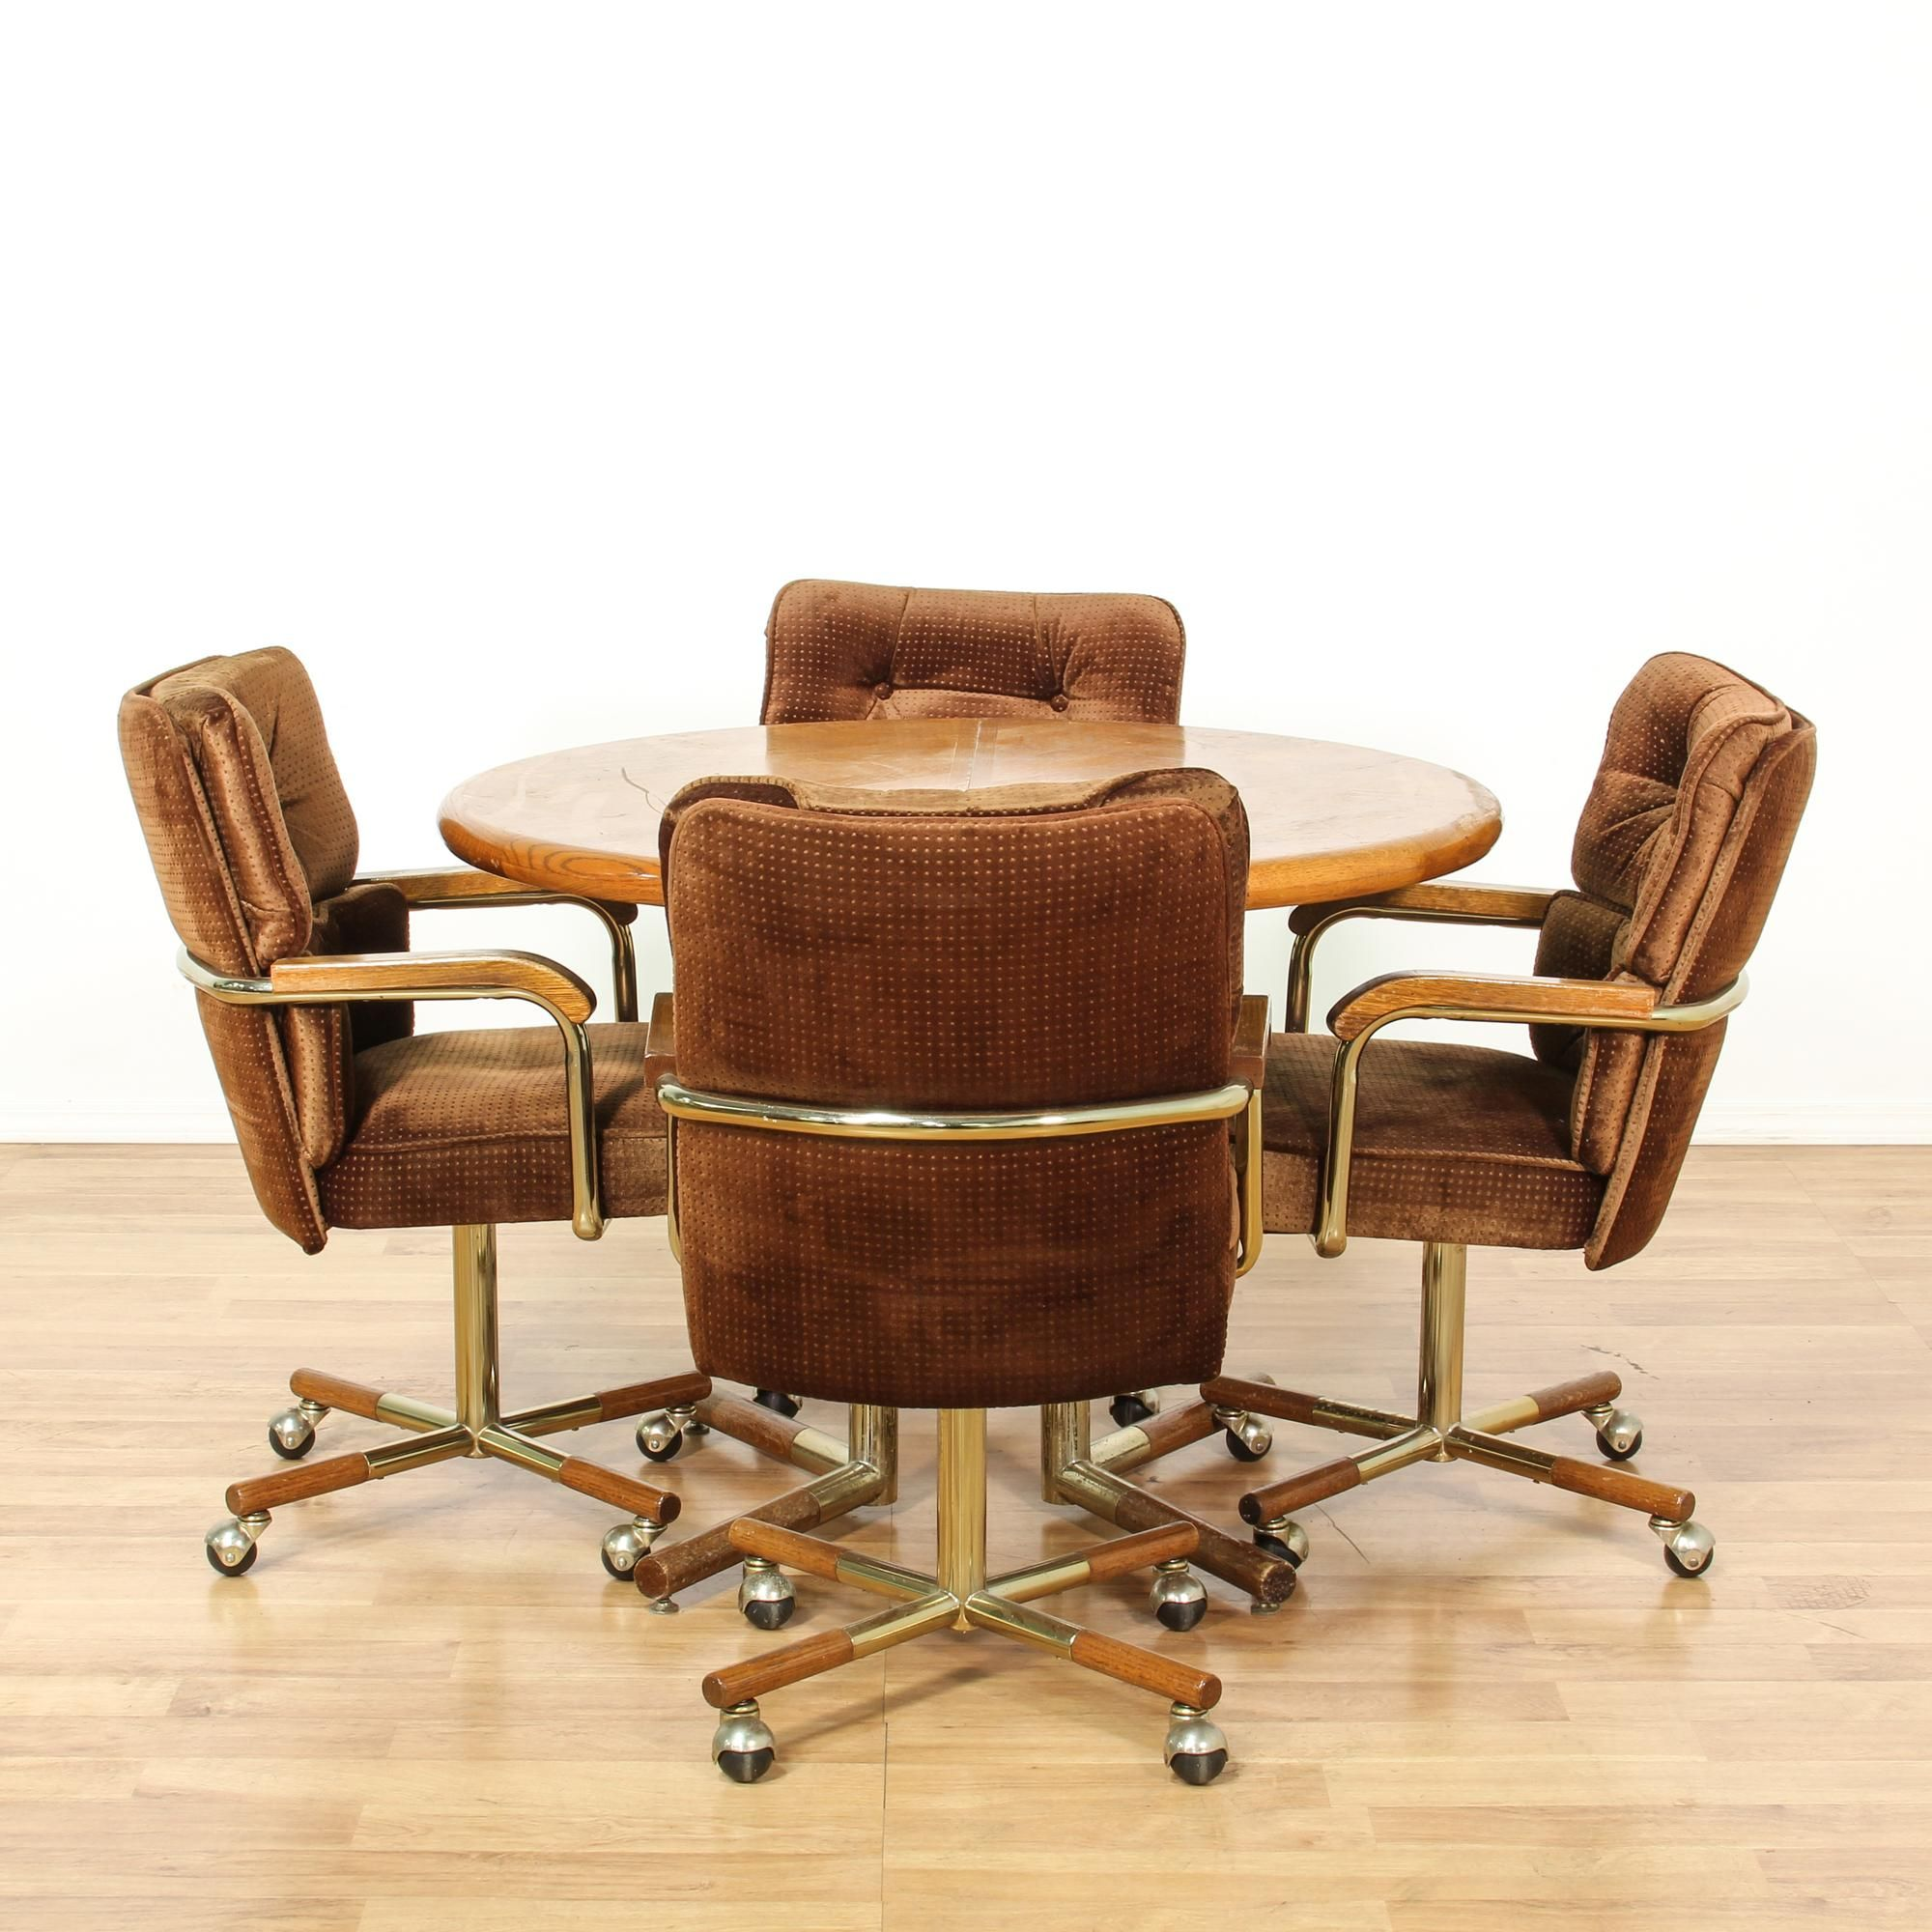 This Mid Century Modern Dining Set Features A Round Dining Table With A Wood Herringbone Table Top And Simple Mid Century Modern Dining Set Chair Rolling Chair